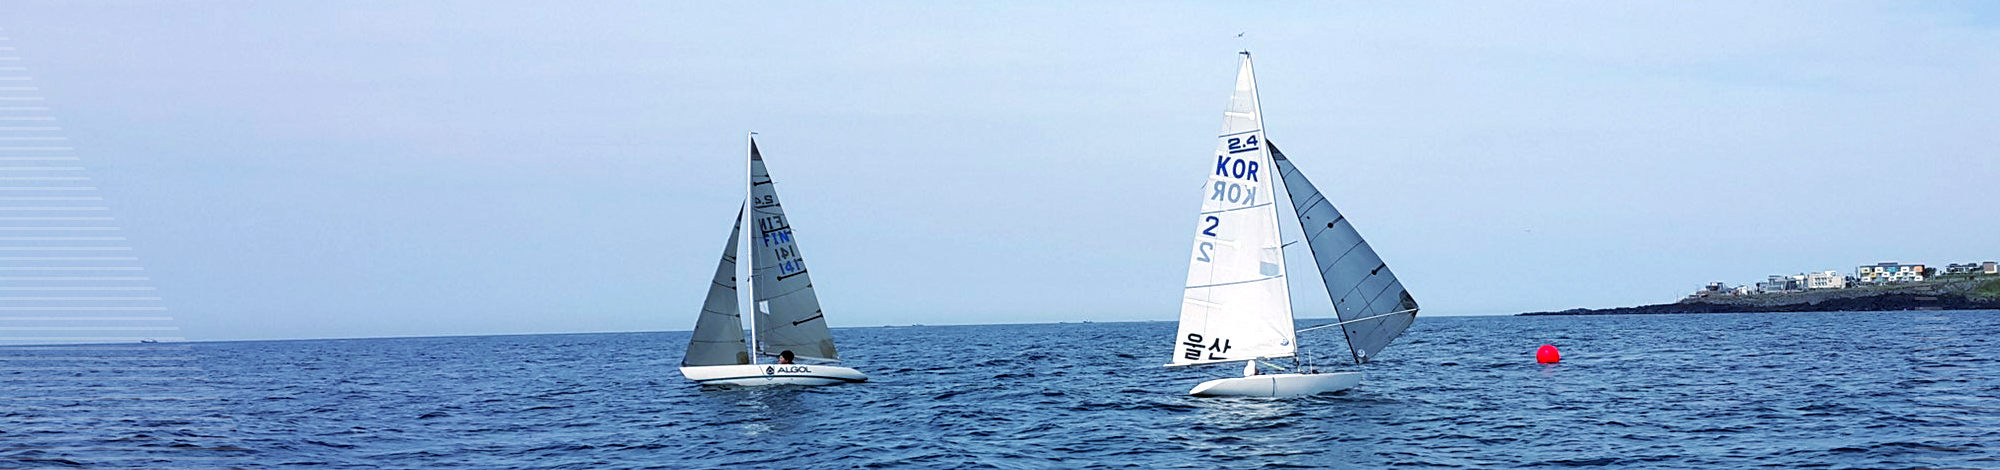 Korea Disabled Yacht Federation